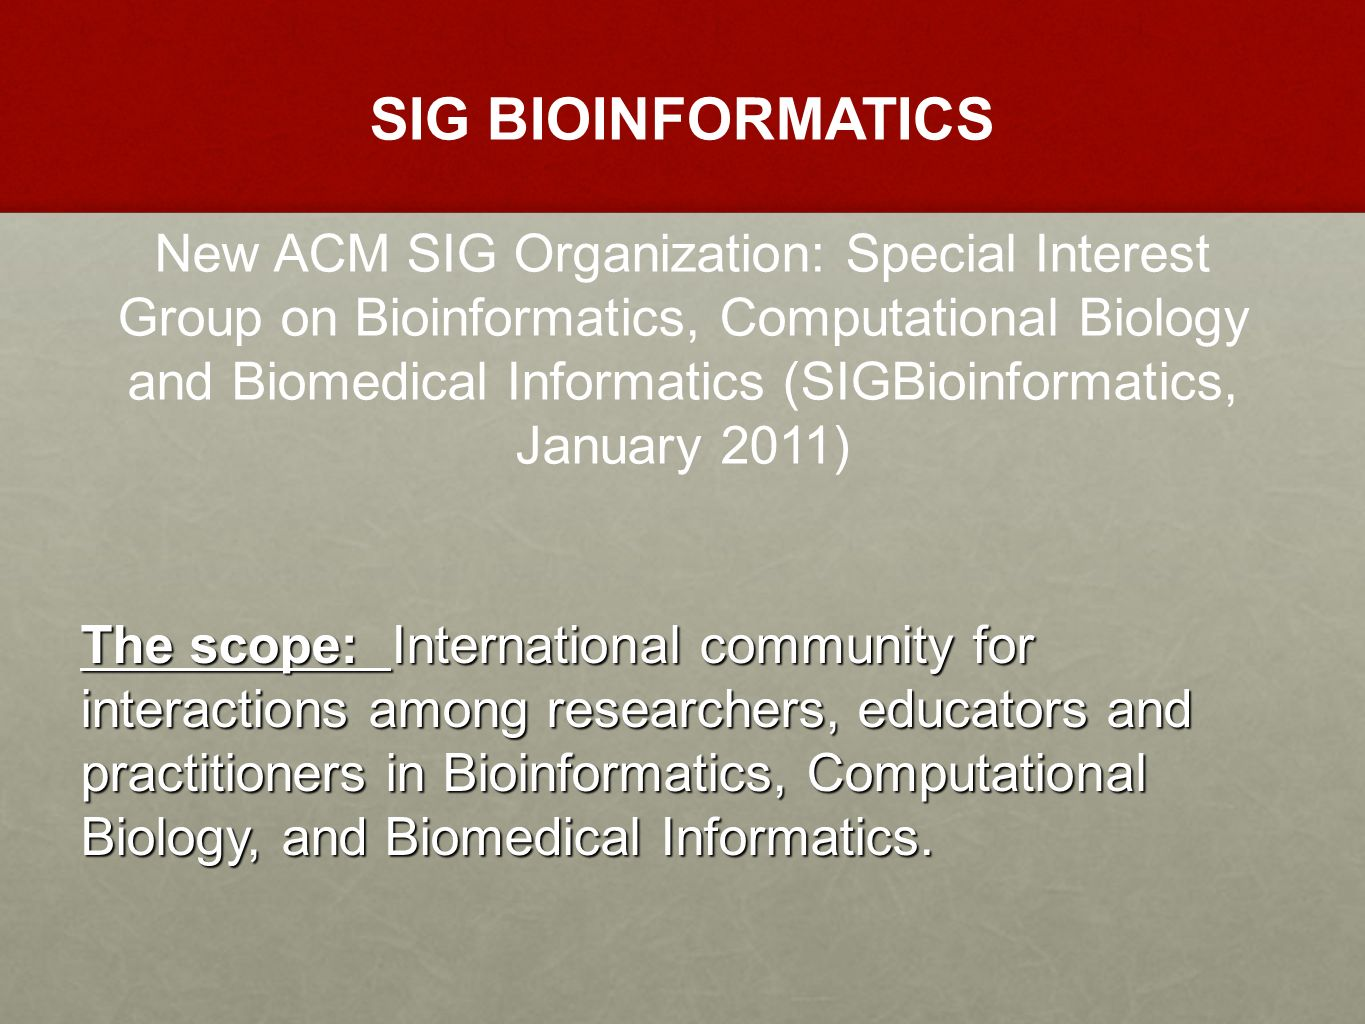 SIG BIOINFORMATICS New ACM SIG Organization: Special Interest Group on Bioinformatics, Computational Biology and Biomedical Informatics (SIGBioinformatics, January 2011) The scope: International community for interactions among researchers, educators and practitioners in Bioinformatics, Computational Biology, and Biomedical Informatics.